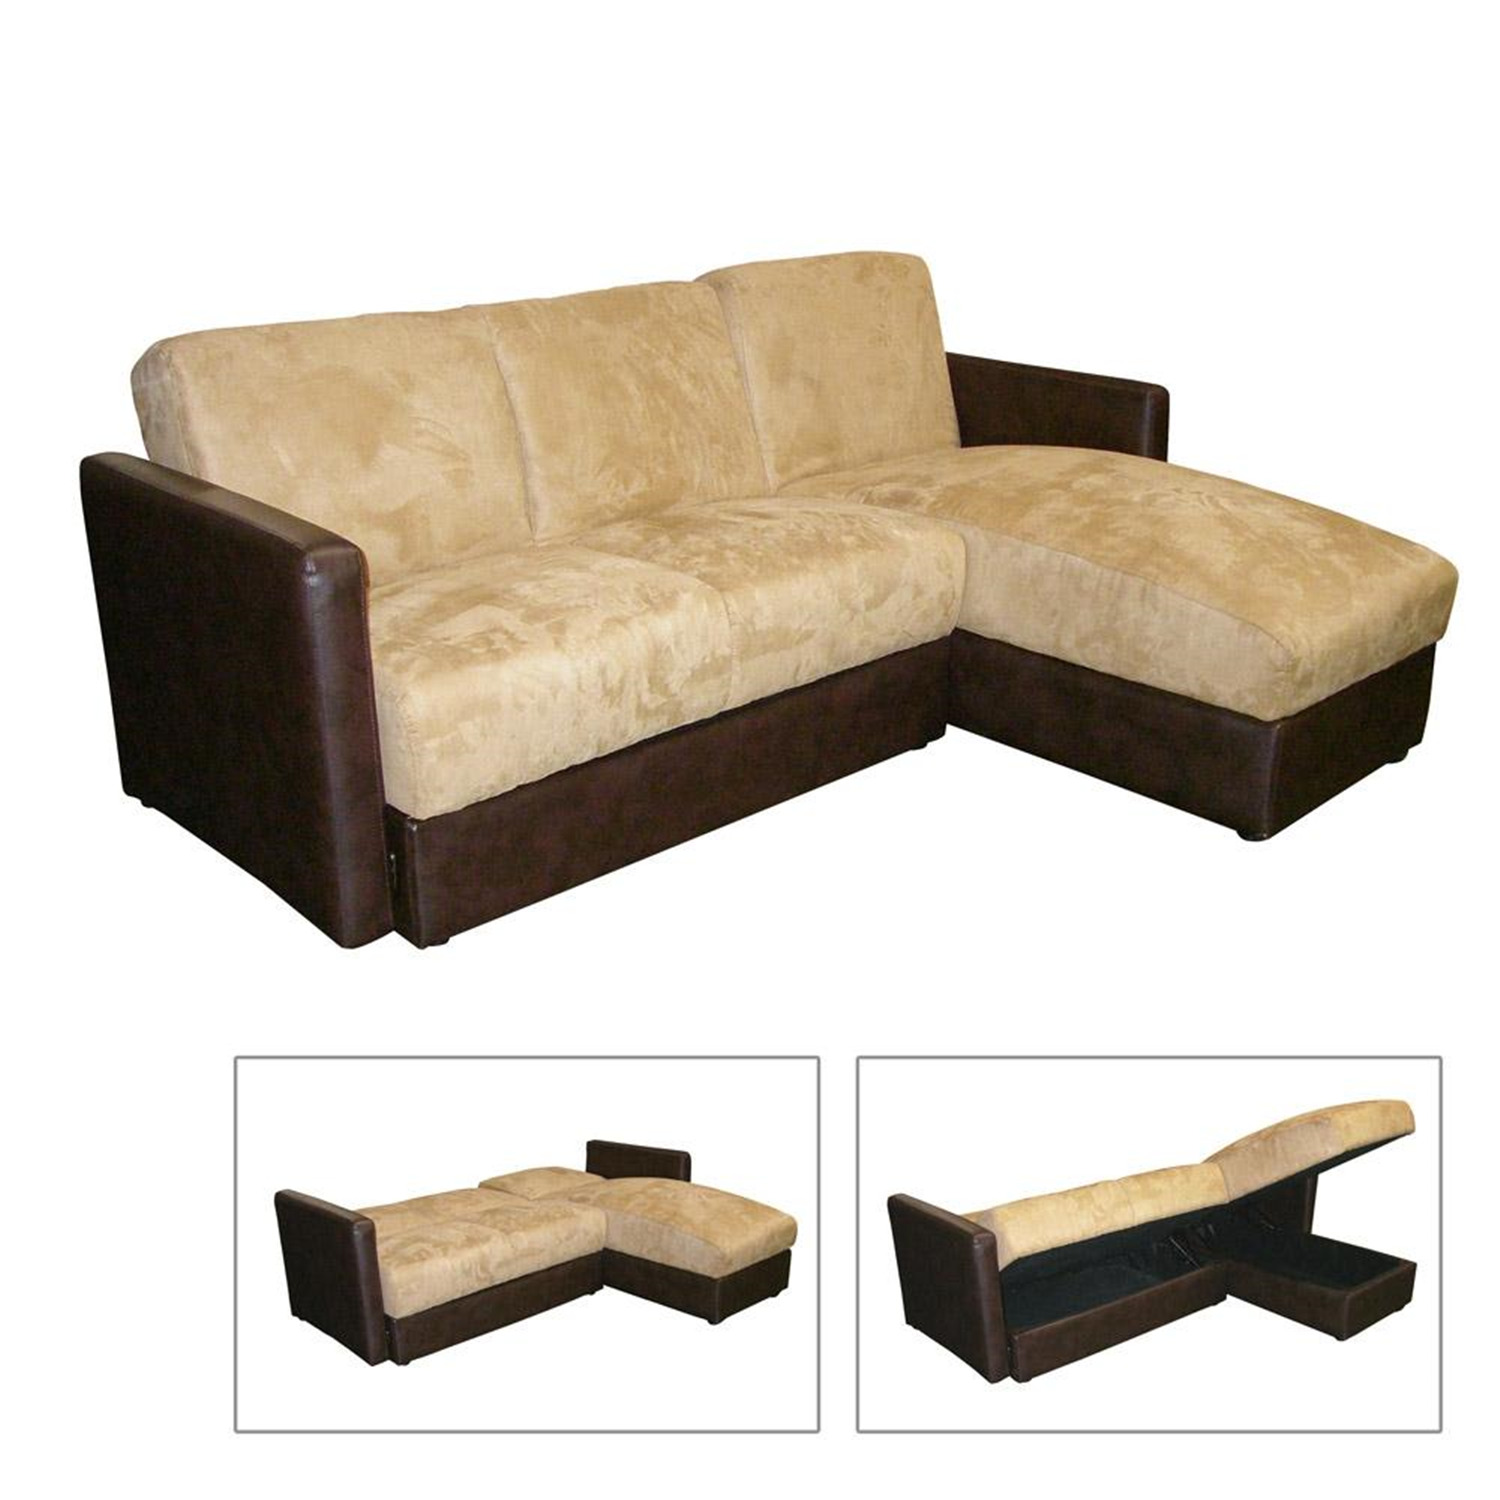 ORE International Sofa Bed With Storage By OJ Commerce 1